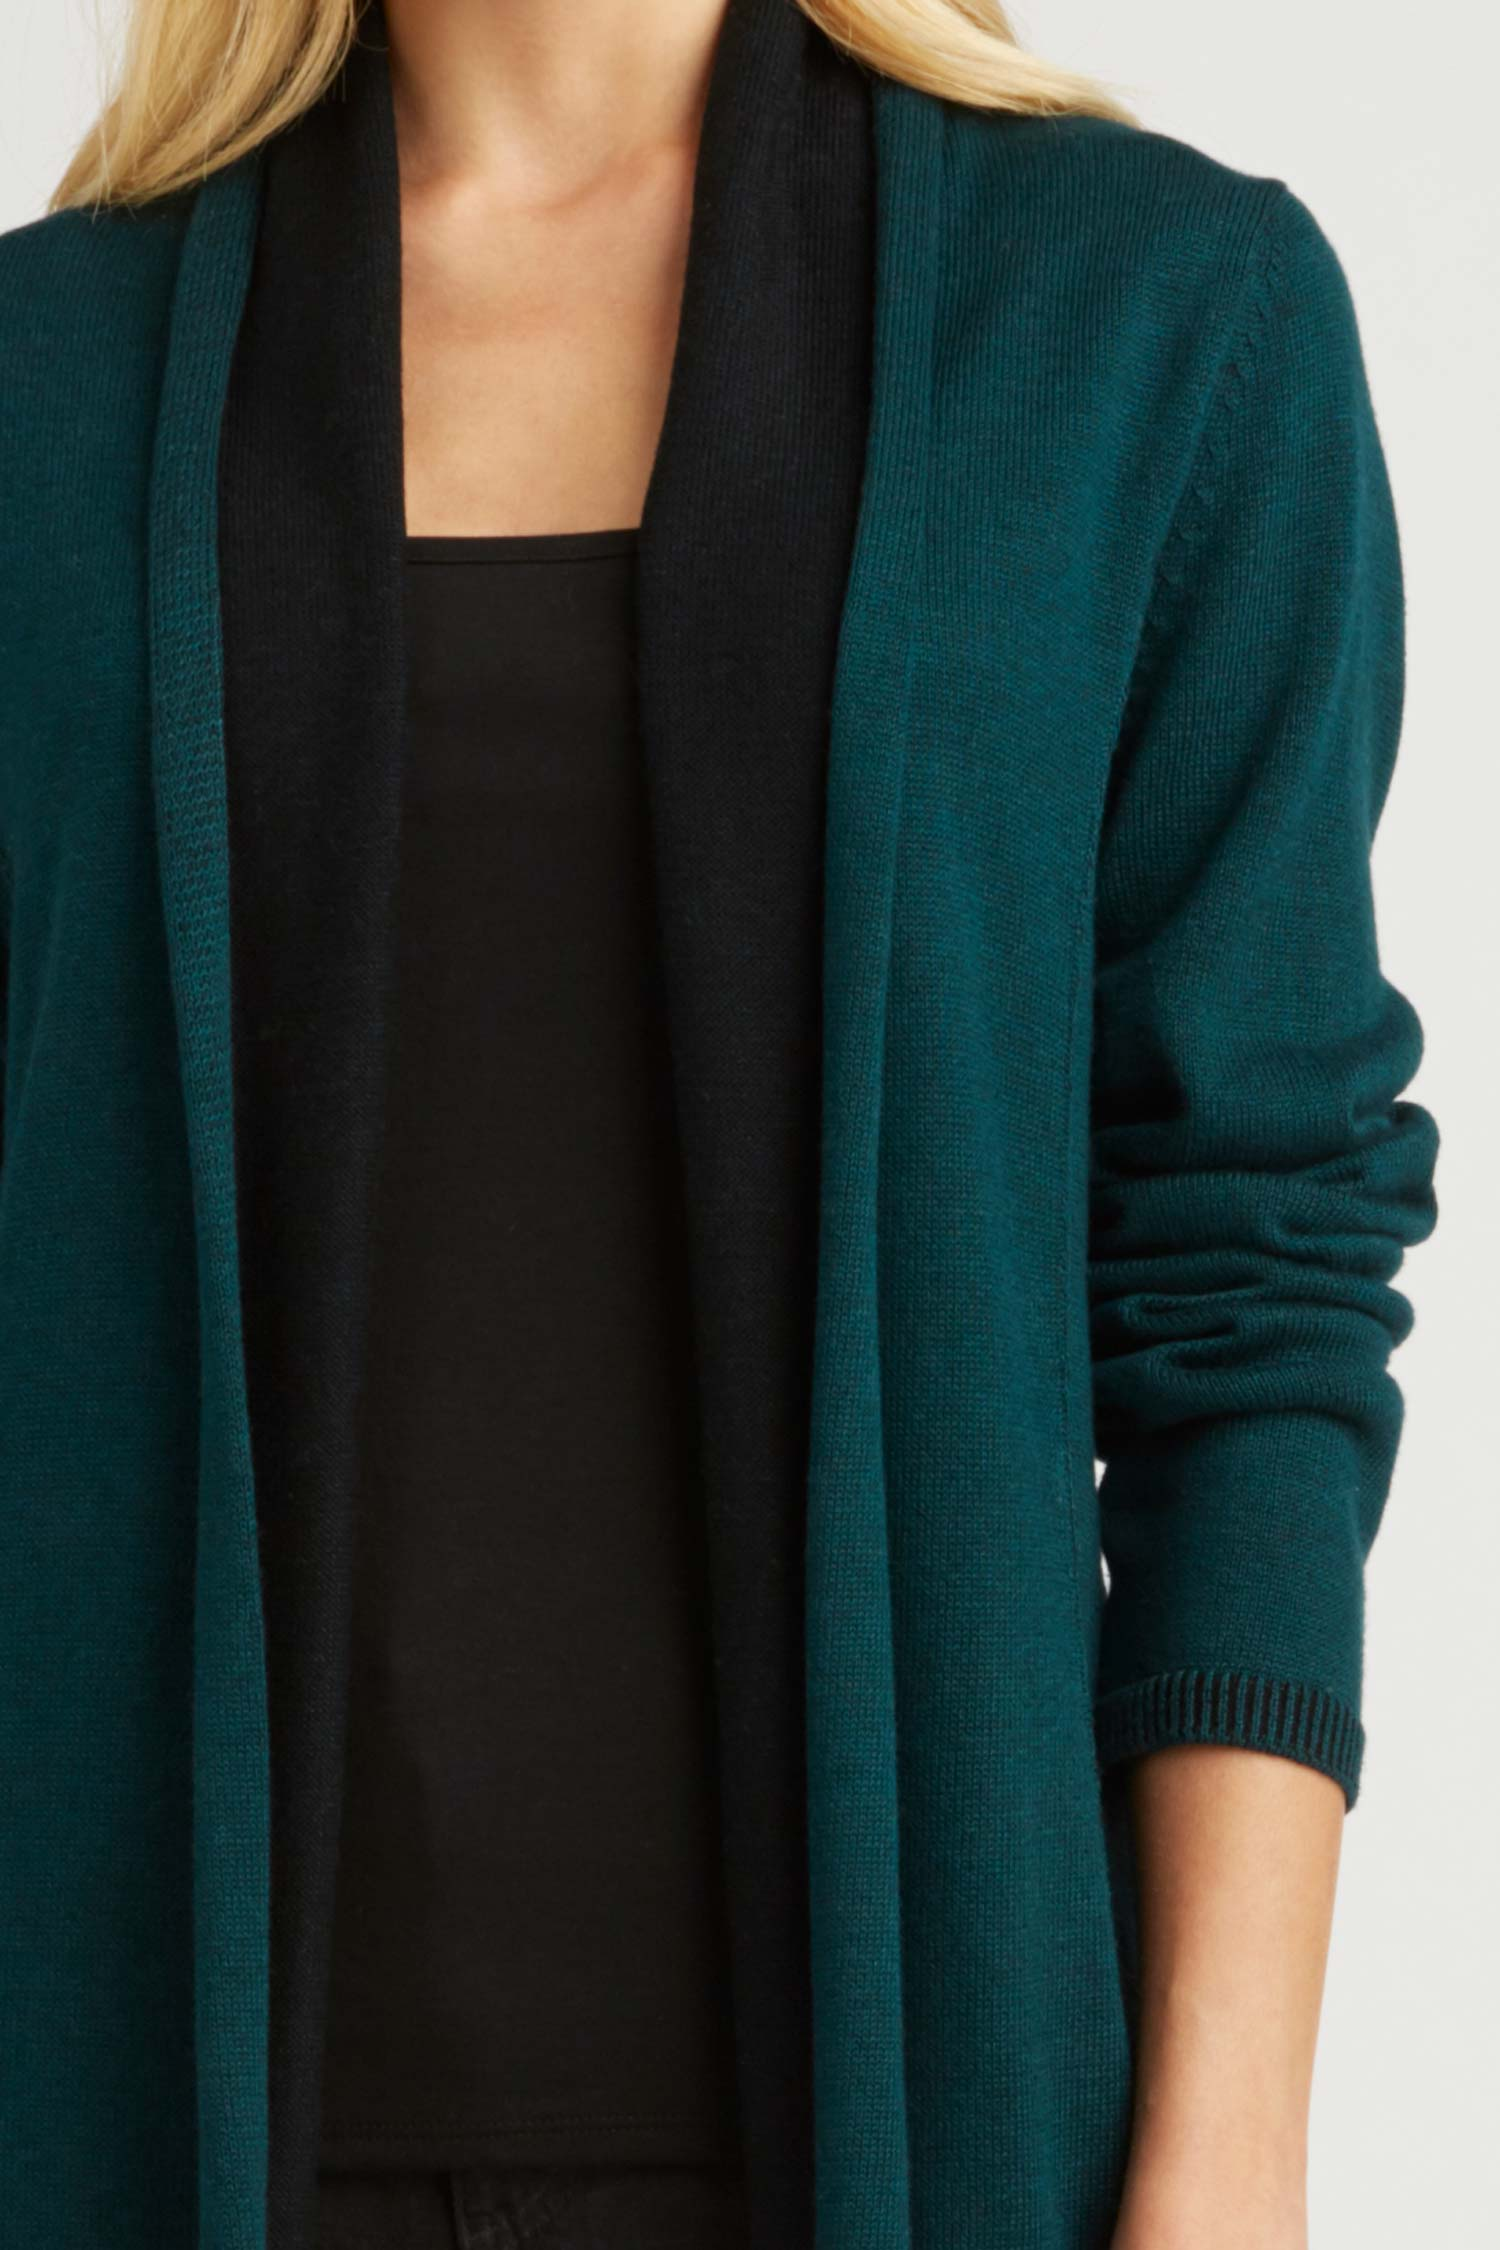 Womens Luxury Reversible Cardigan | Fair Trade Clothing